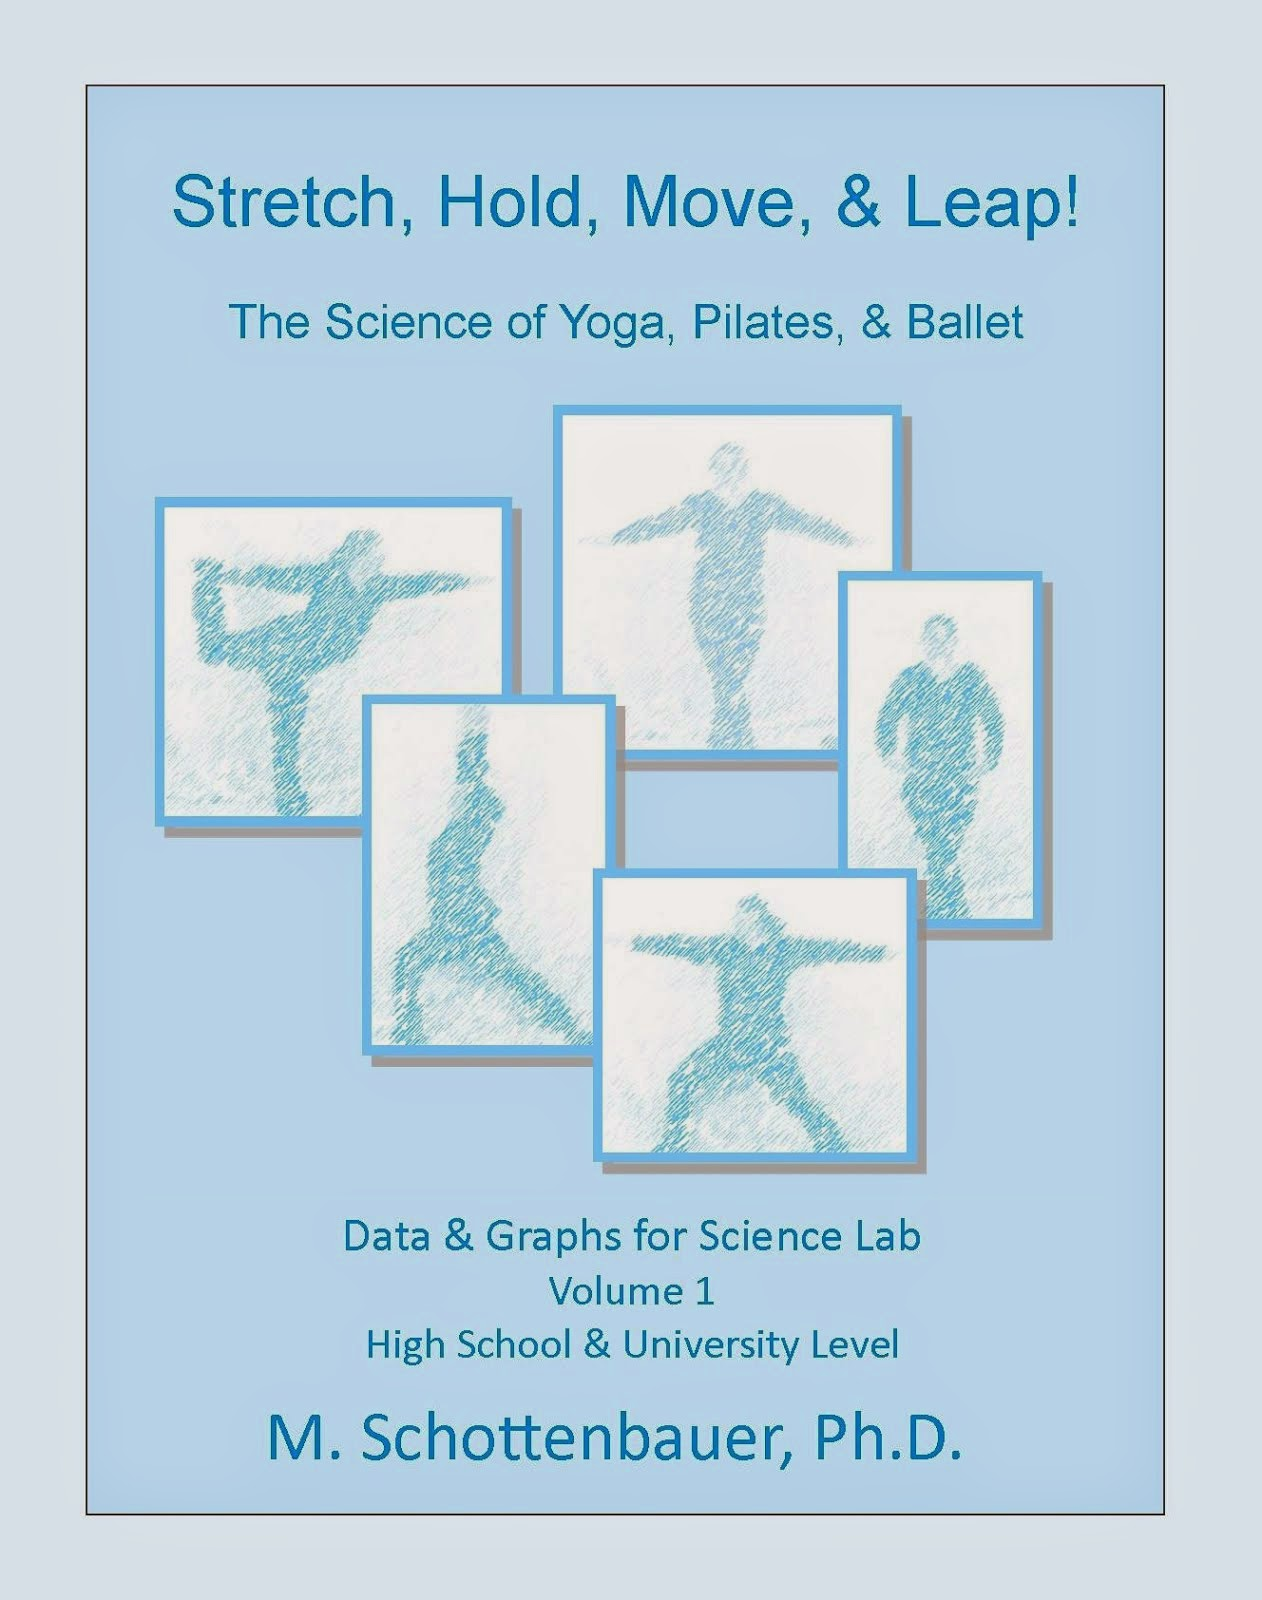 Science of Yoga, Pilates, & Ballet: Graphs & Data